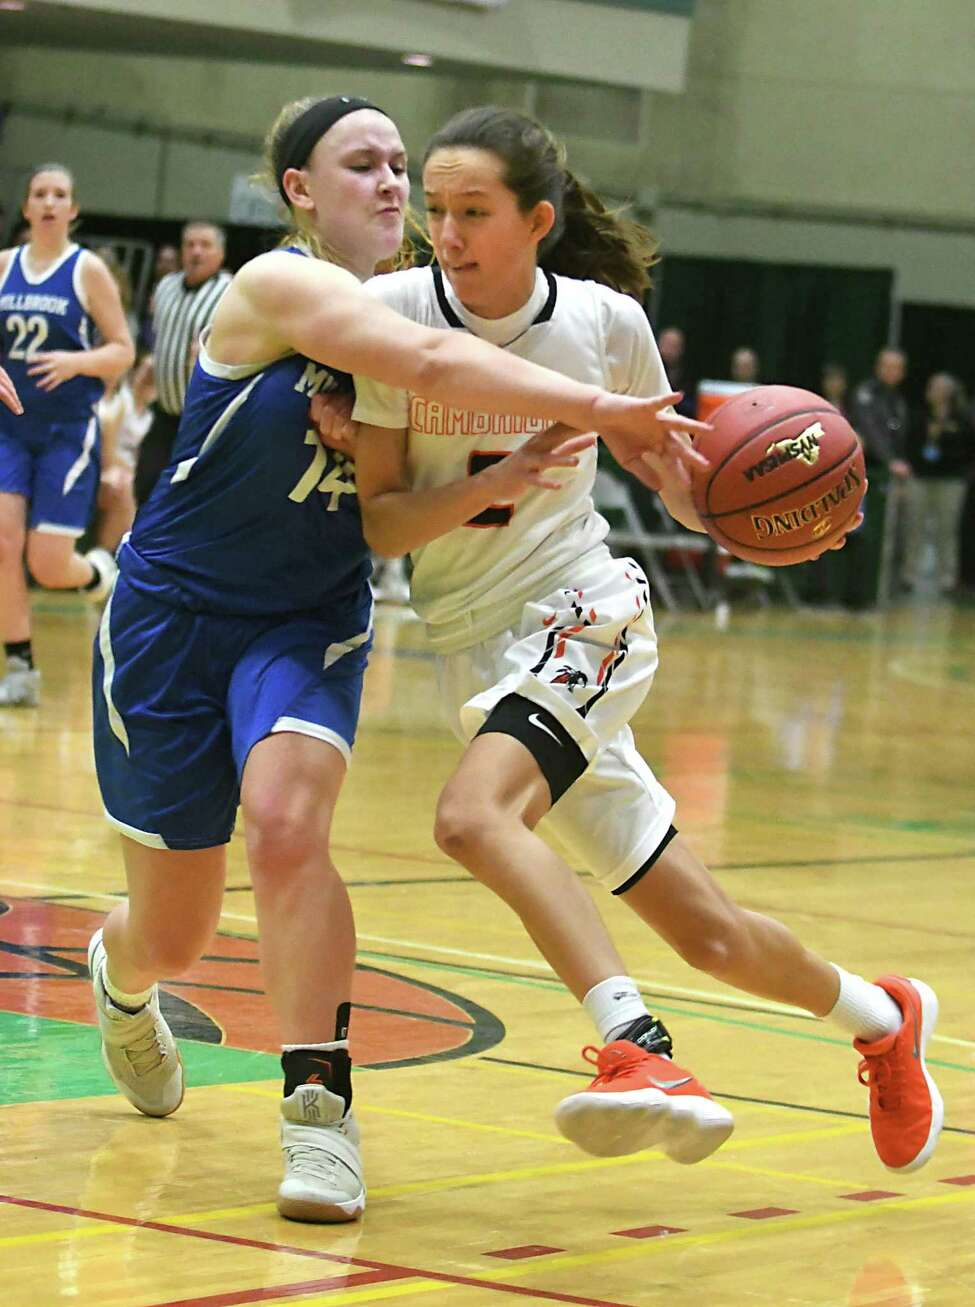 Cambridge's Sophie Phillips drives to the basket guarded by Millbrook's Brooke Babbitt during the Class C state semifinal at Hudson Valley Community College on Friday, March 16, 2018 in Troy, N.Y. (Lori Van Buren/Times Union)